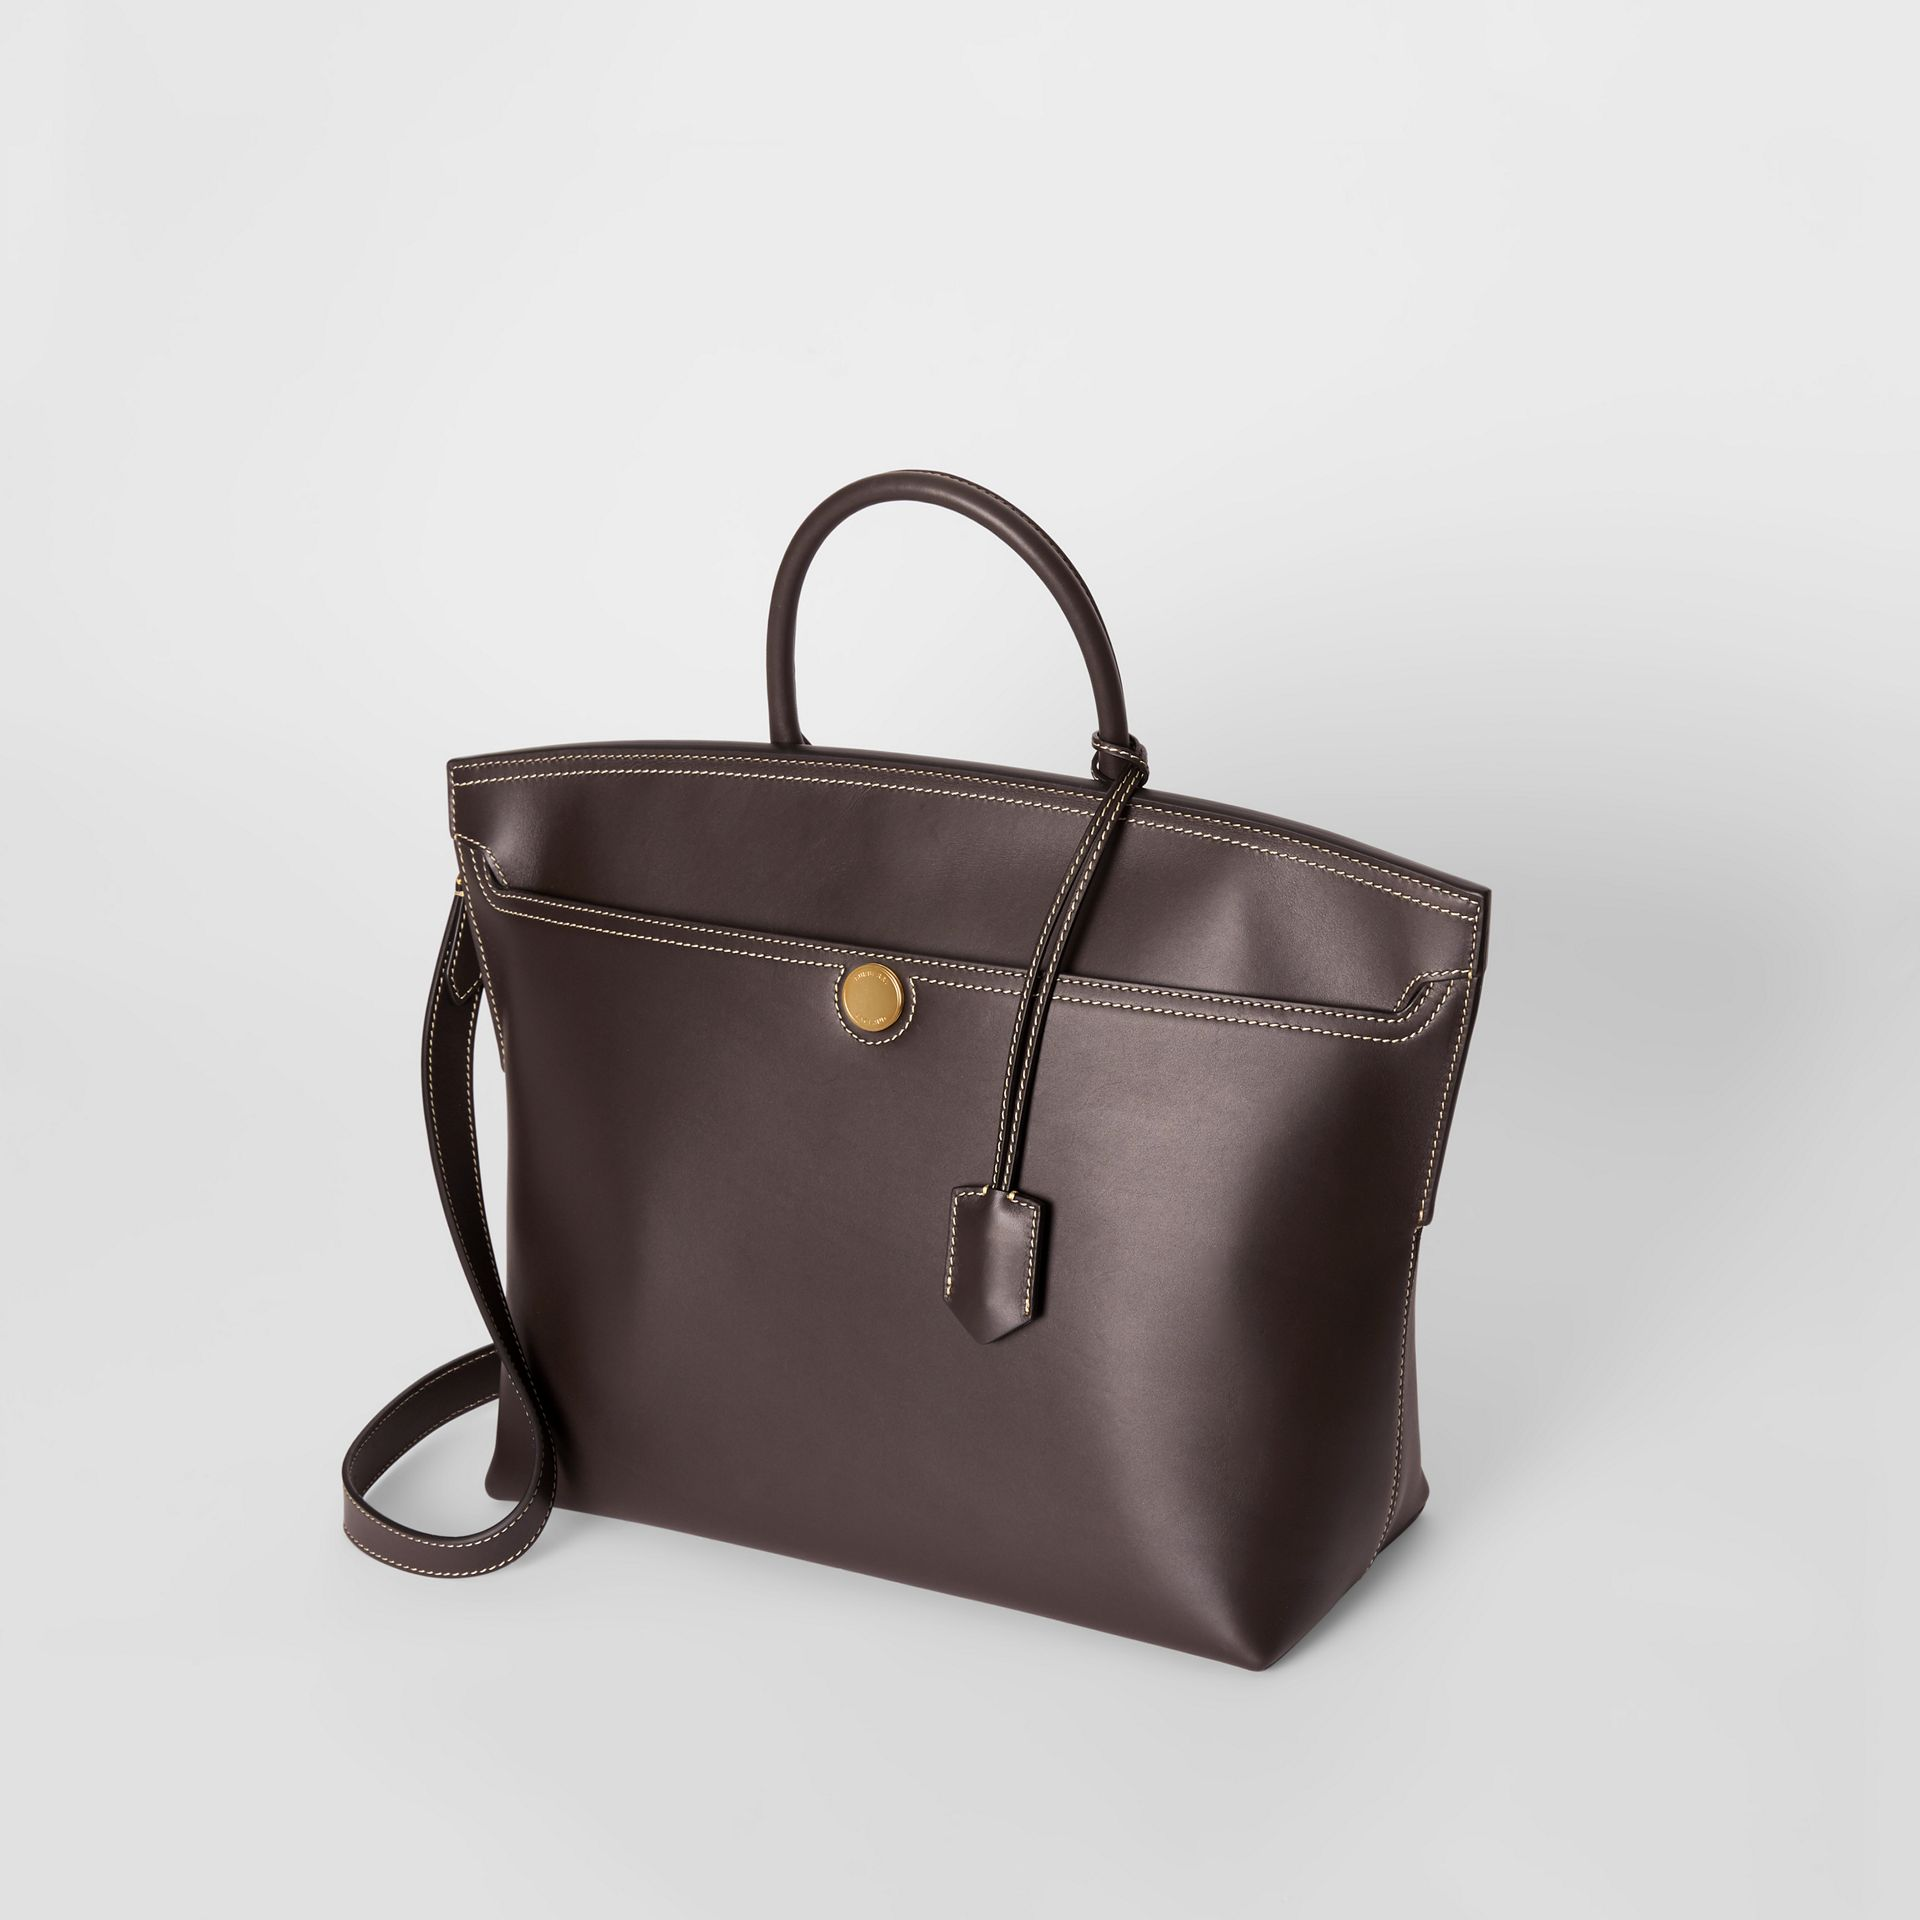 Leather Society Top Handle Bag in Coffee - Women | Burberry - gallery image 2